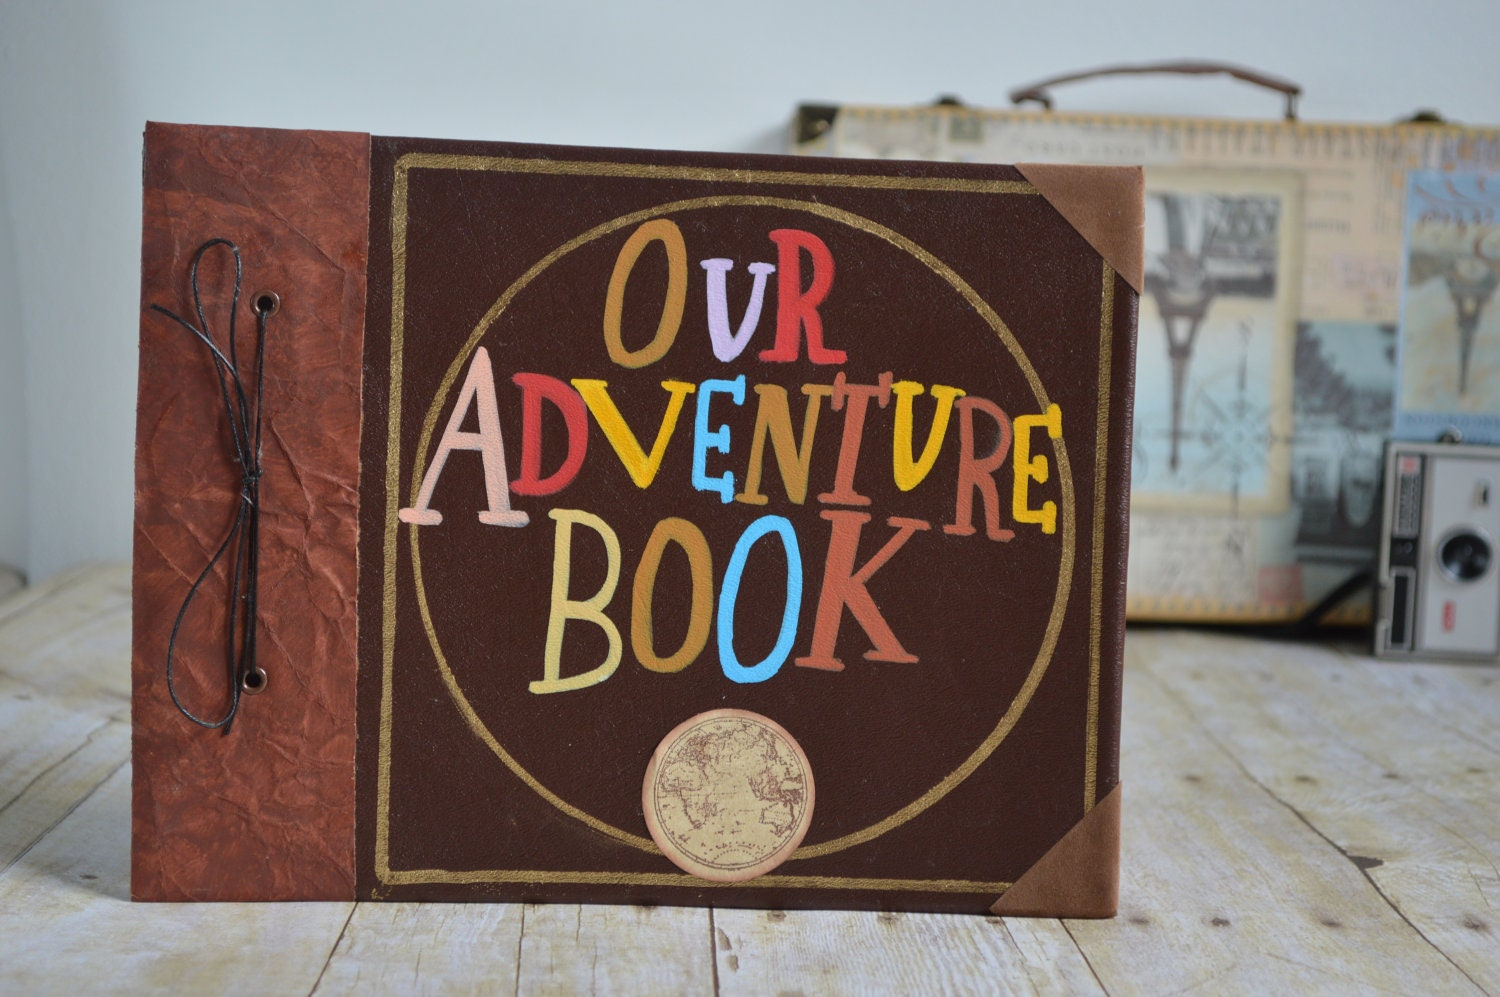 Request a custom order and have something made just for you.: www.etsy.com/listing/84050474/our-adventure-book-adventure-edition